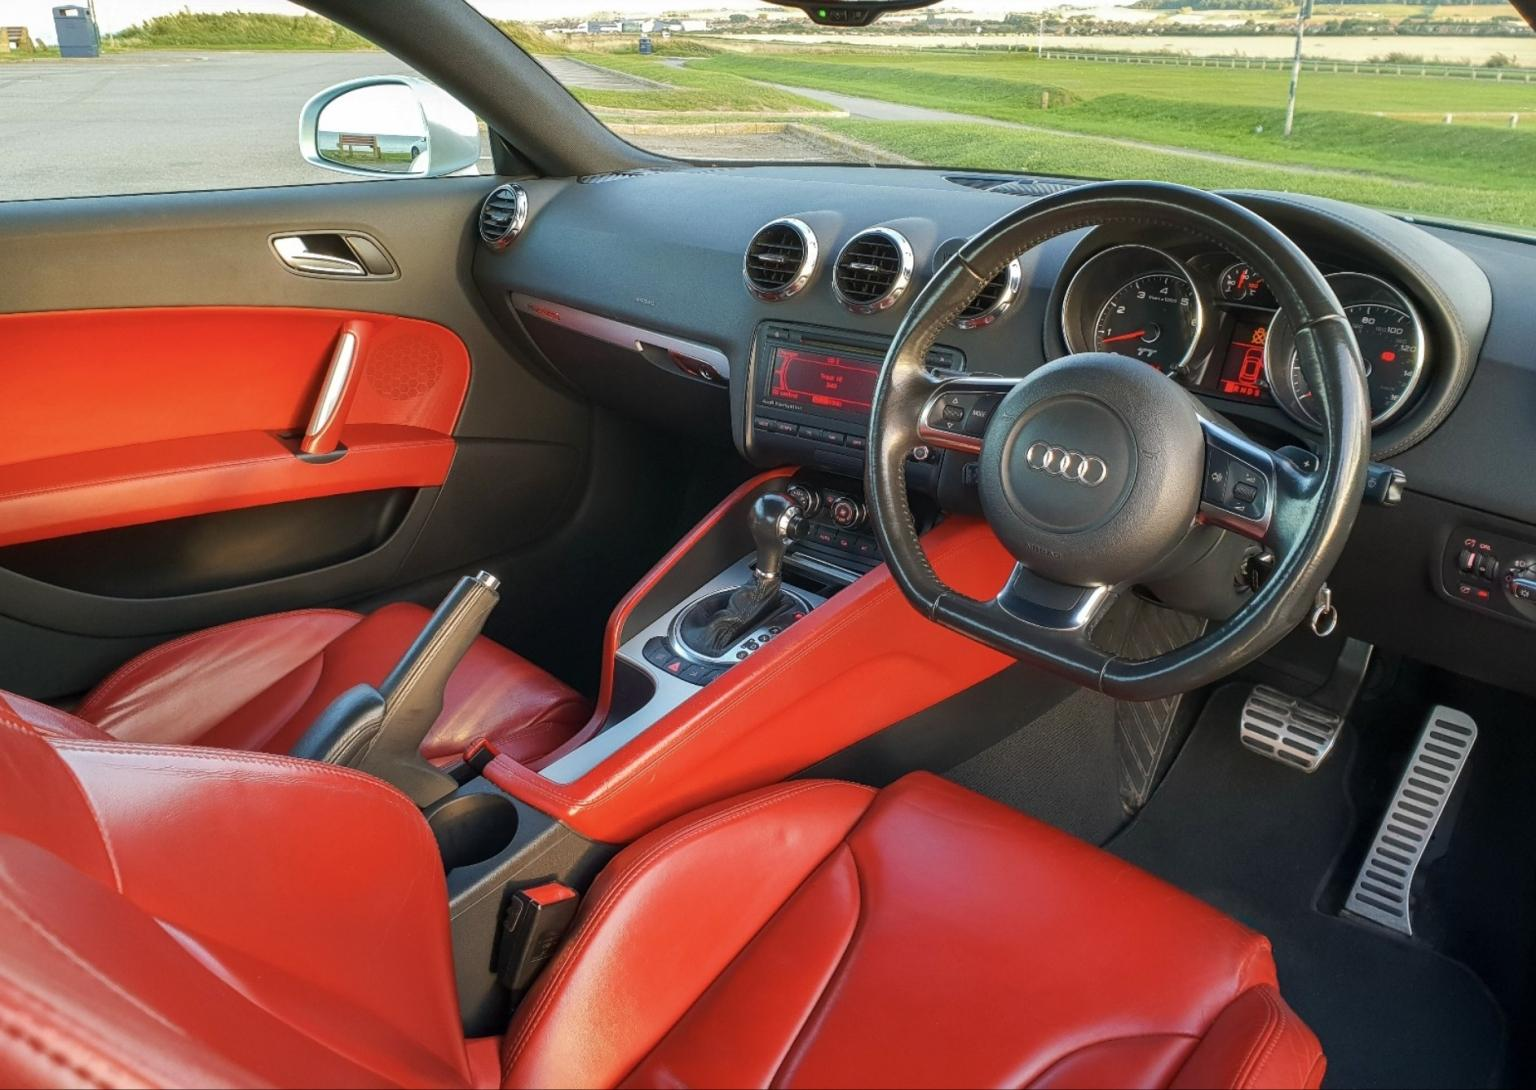 Picture of: Audi Tt Mk2 3 2 Swaps Or Sell In Ts17 Middlesbrough For 4 000 00 For Sale Shpock